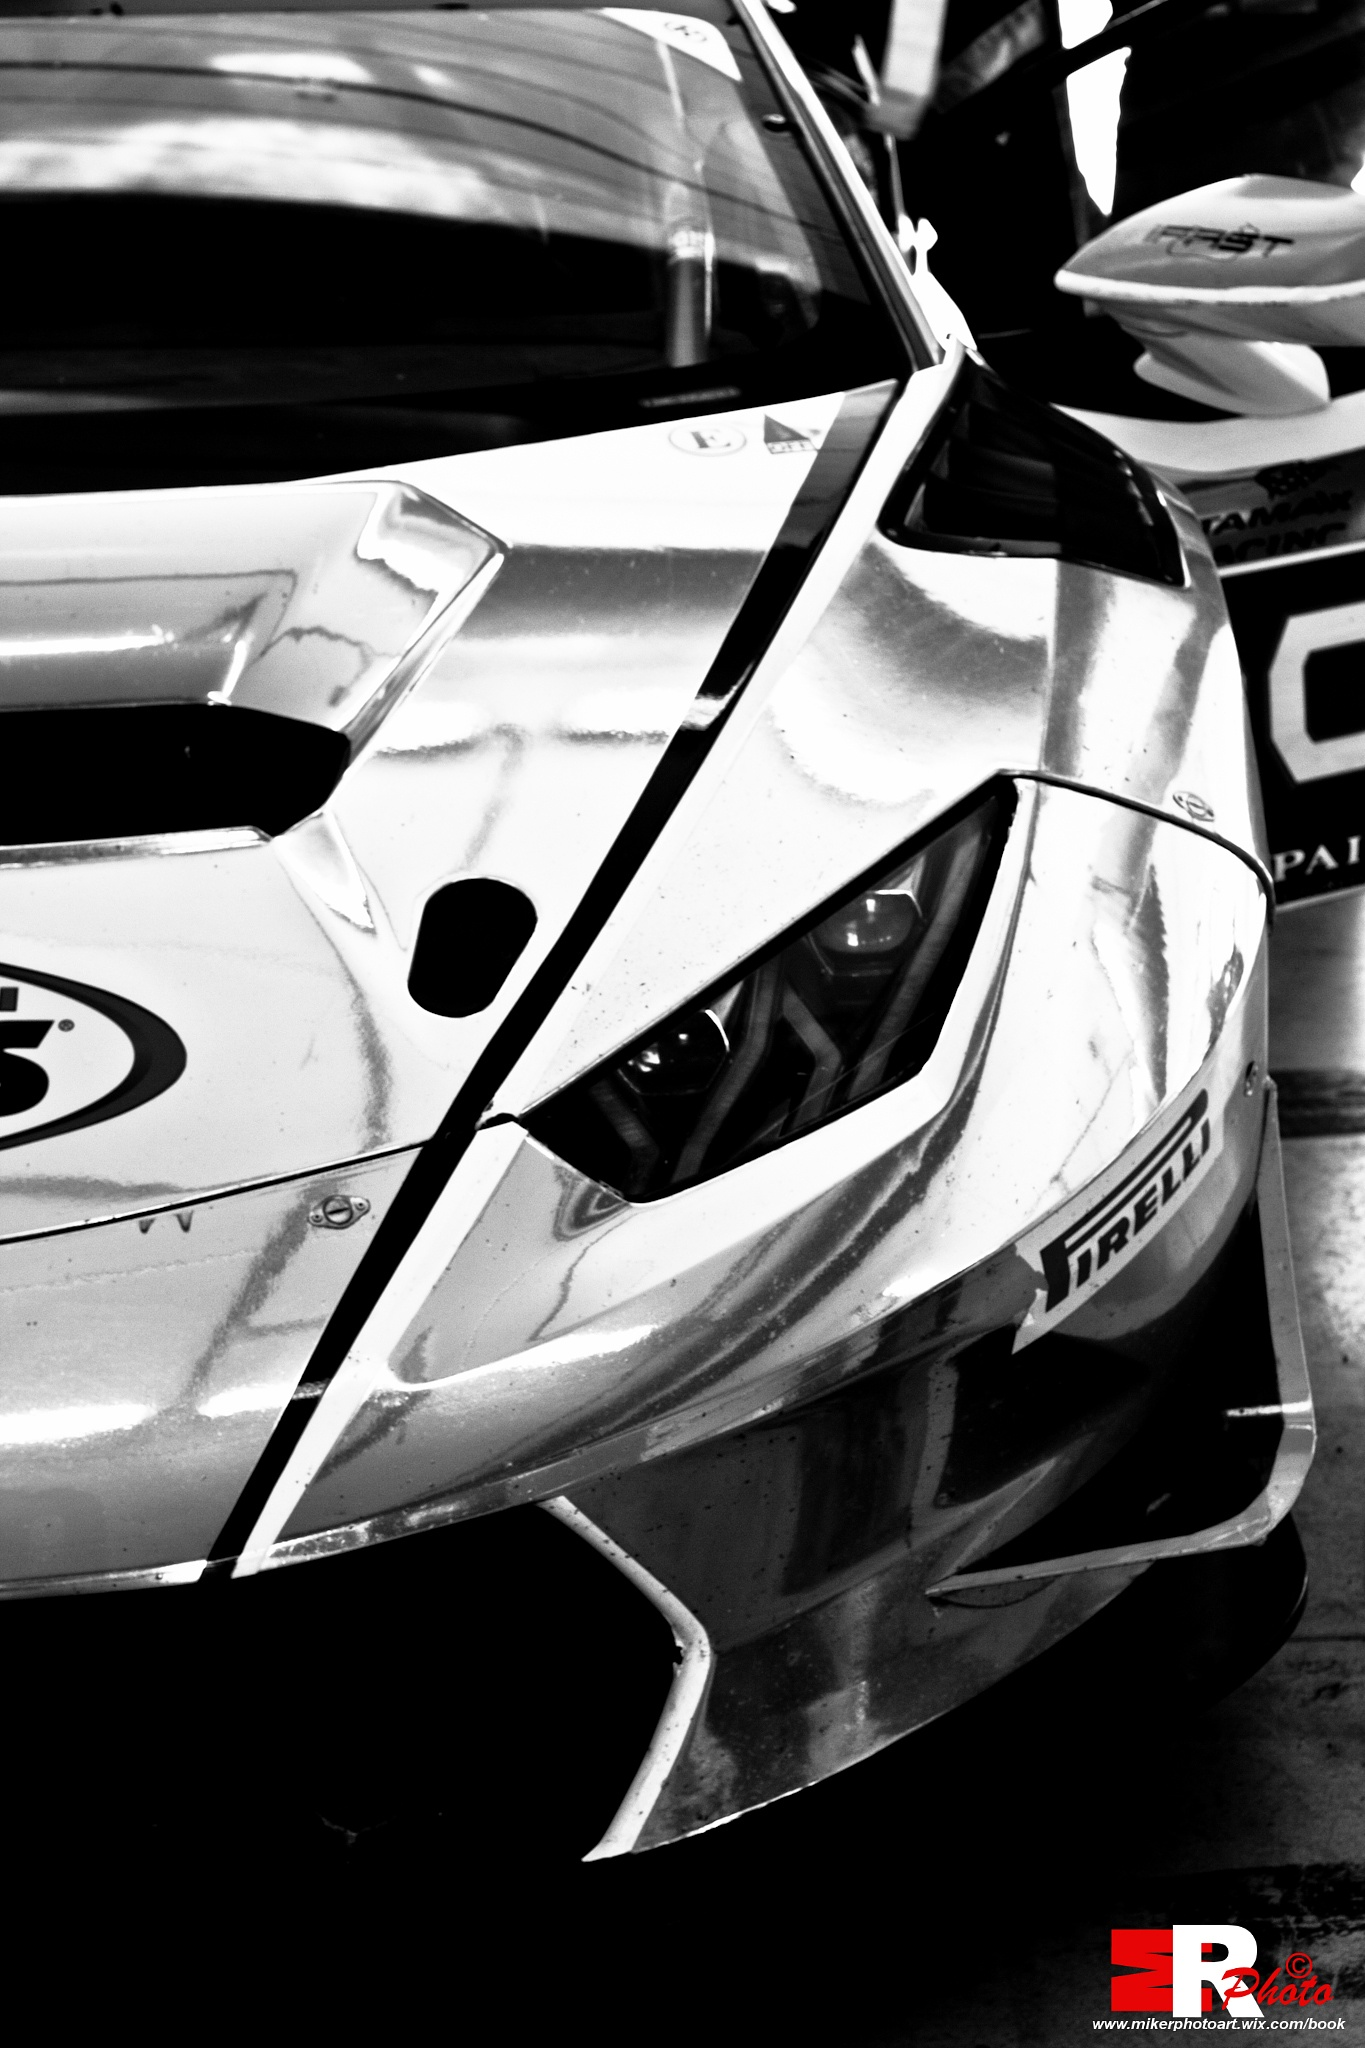 Lamborghini Huracàn | front-view by Michele Rallo | MR PhotoArt ©